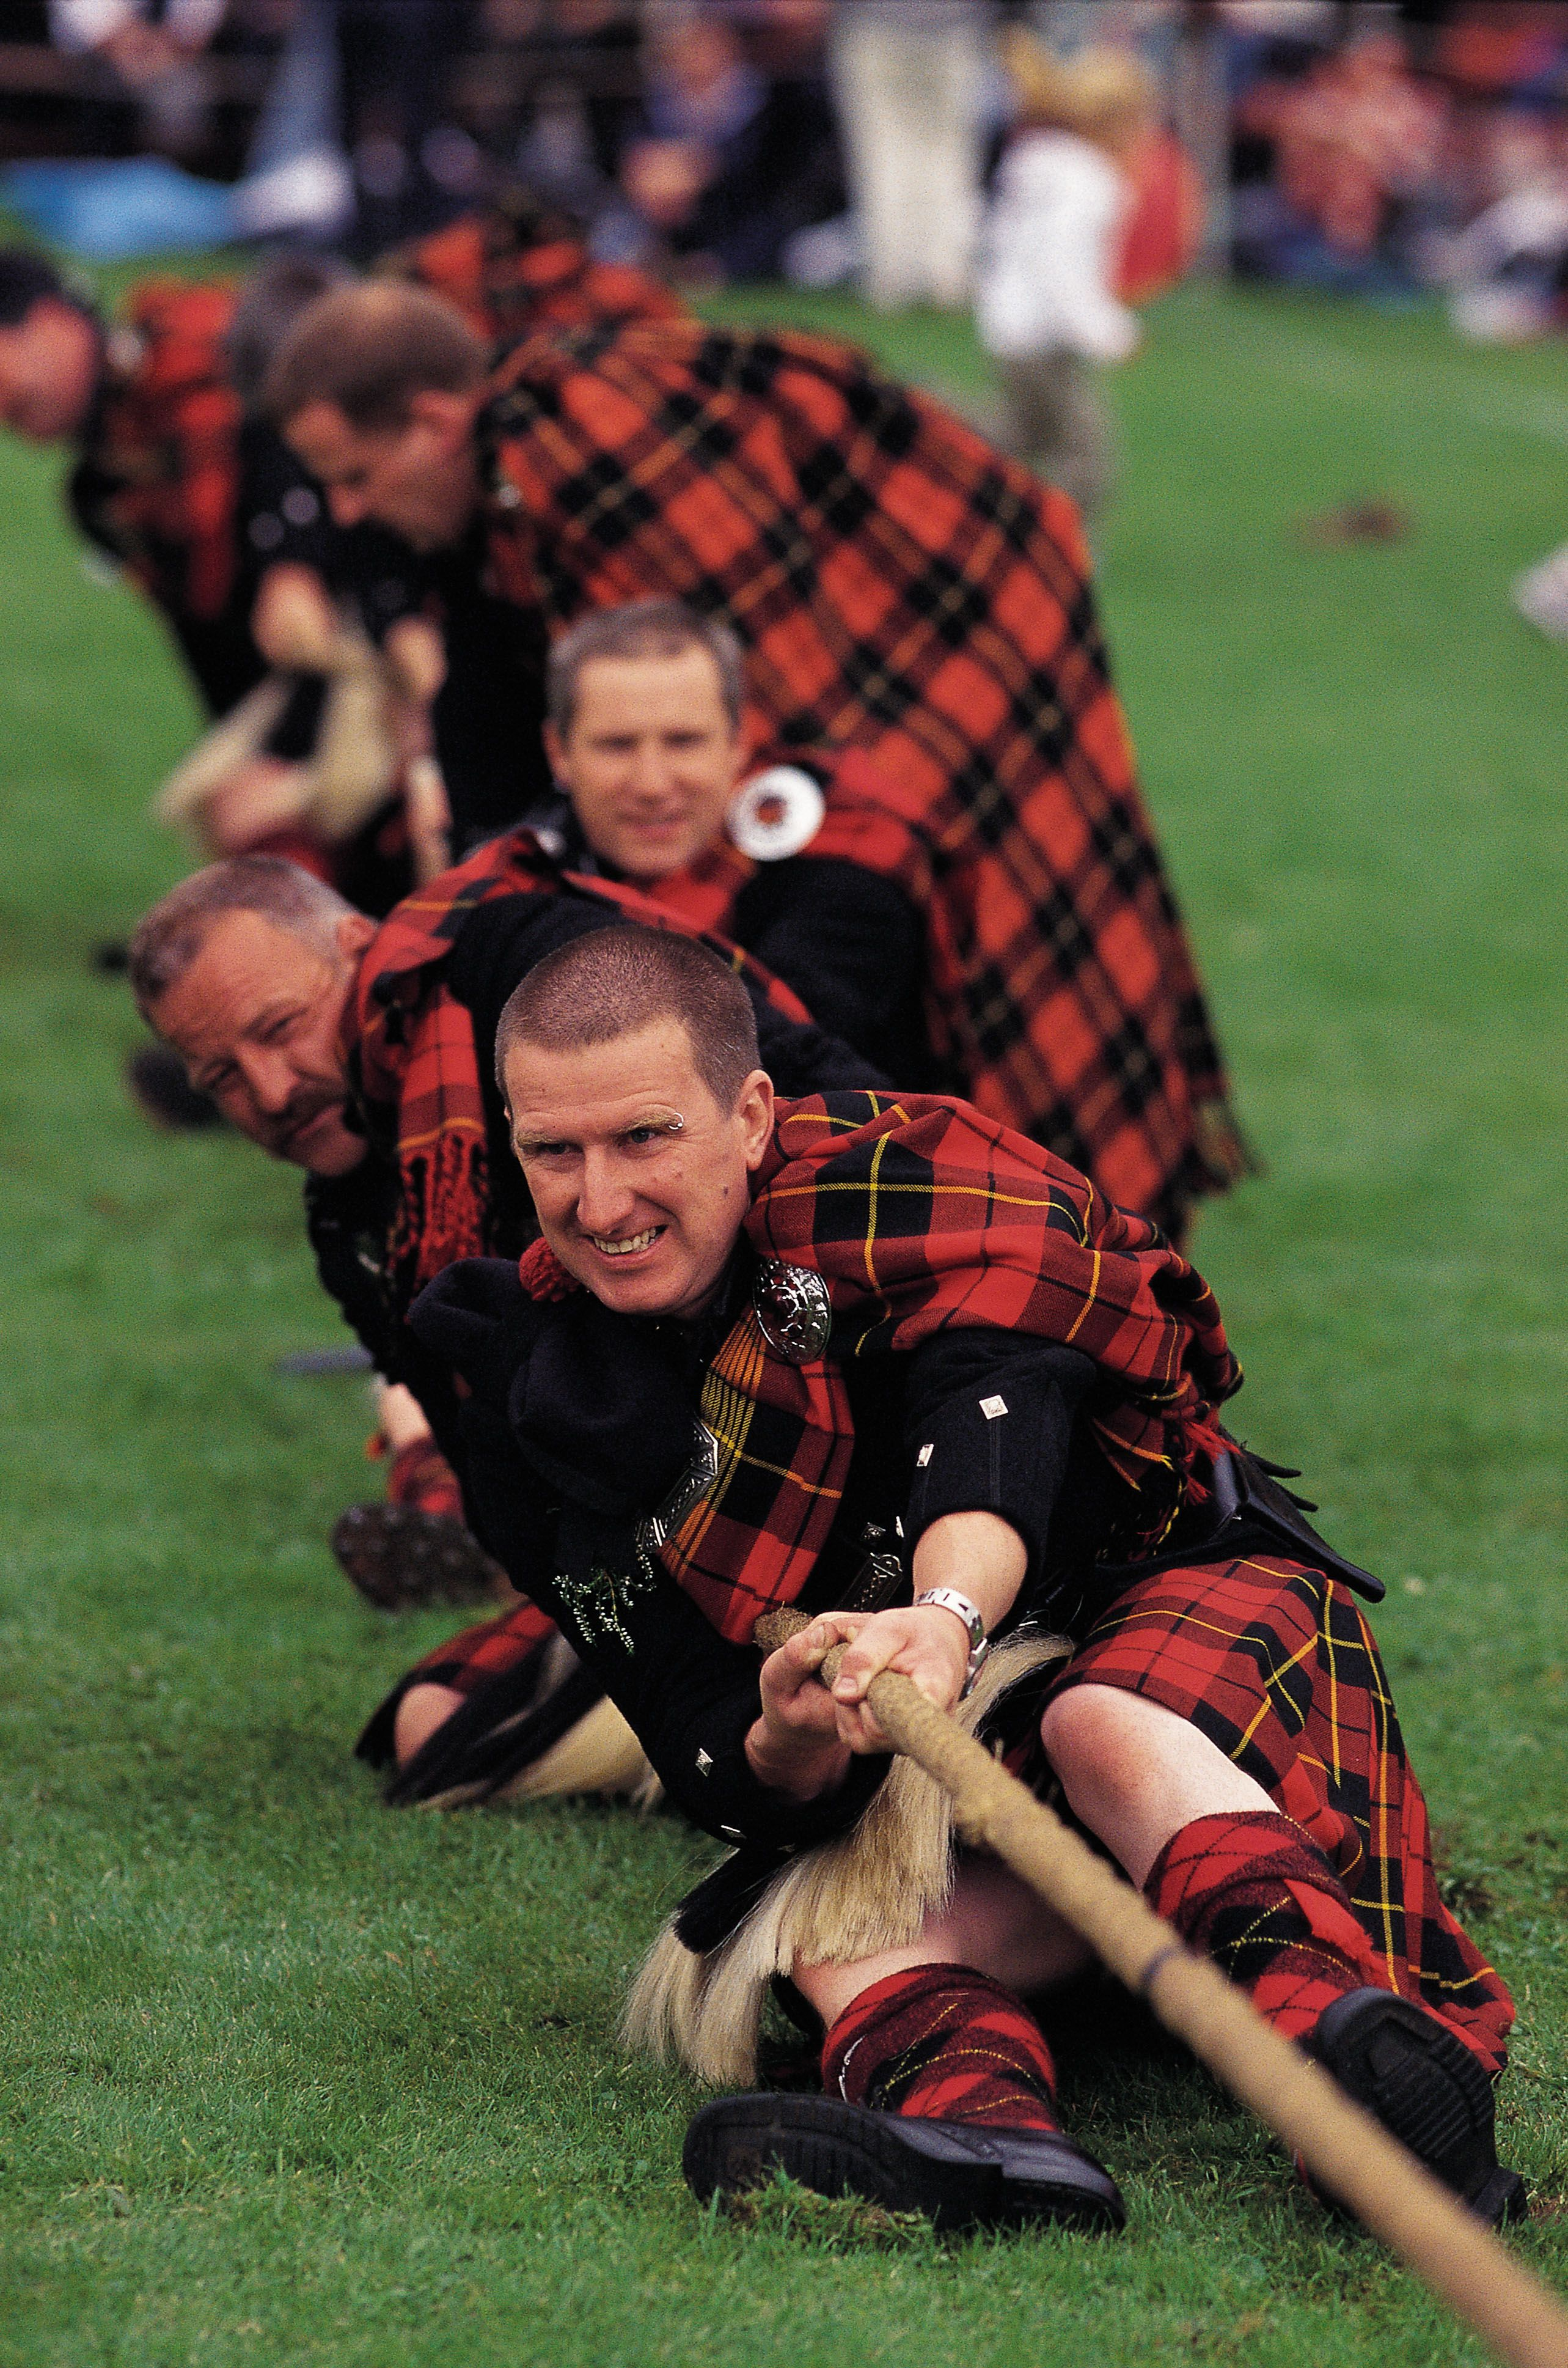 Hot Men In Kilts Competing In The Tug Of War At The